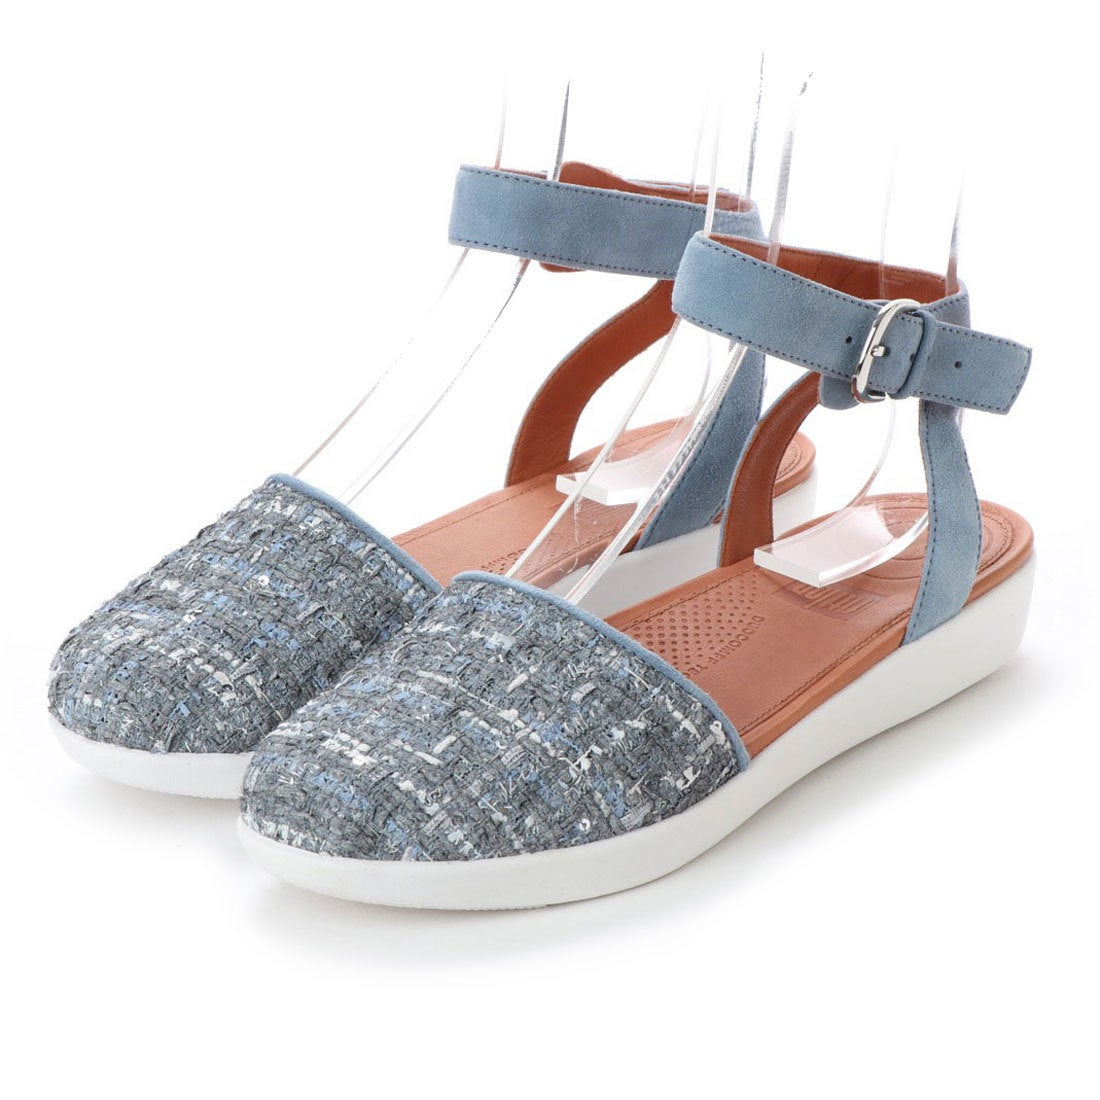 5b776169918145 fitflop フィットフロップ FitFlop COVA CLOSED-TOE SANDALS - LUXE-TWEED (Dove Blue)  -アウトレット通販 ロコレット (LOCOLET)